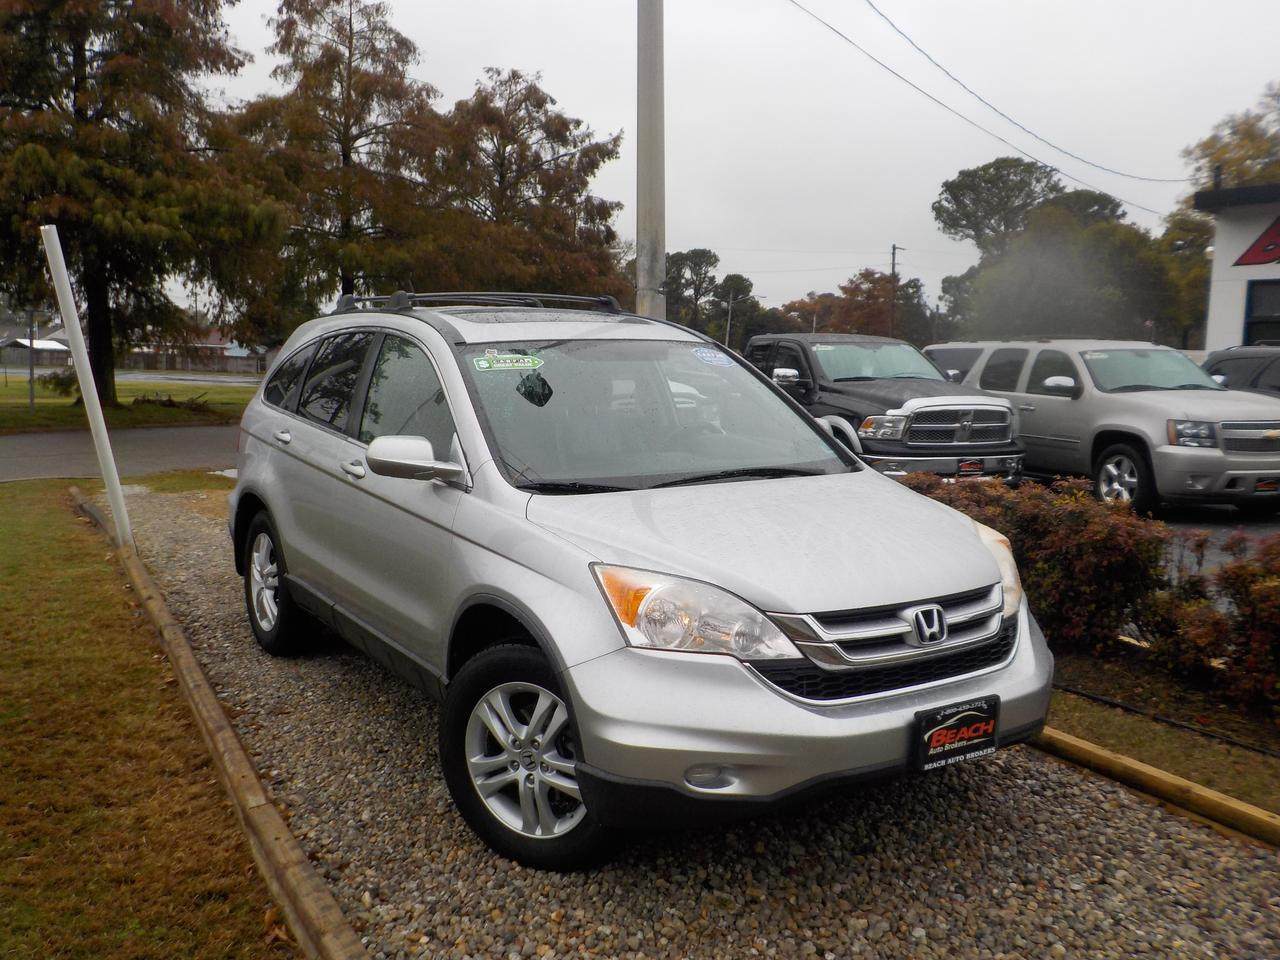 2011 HONDA CR-V EX-L, WARRANTY, LEATHER, SUNROOF, HEATED FRONT SEATS, BLUETOOTH, CRUISE CONTROL, A/C! Norfolk VA